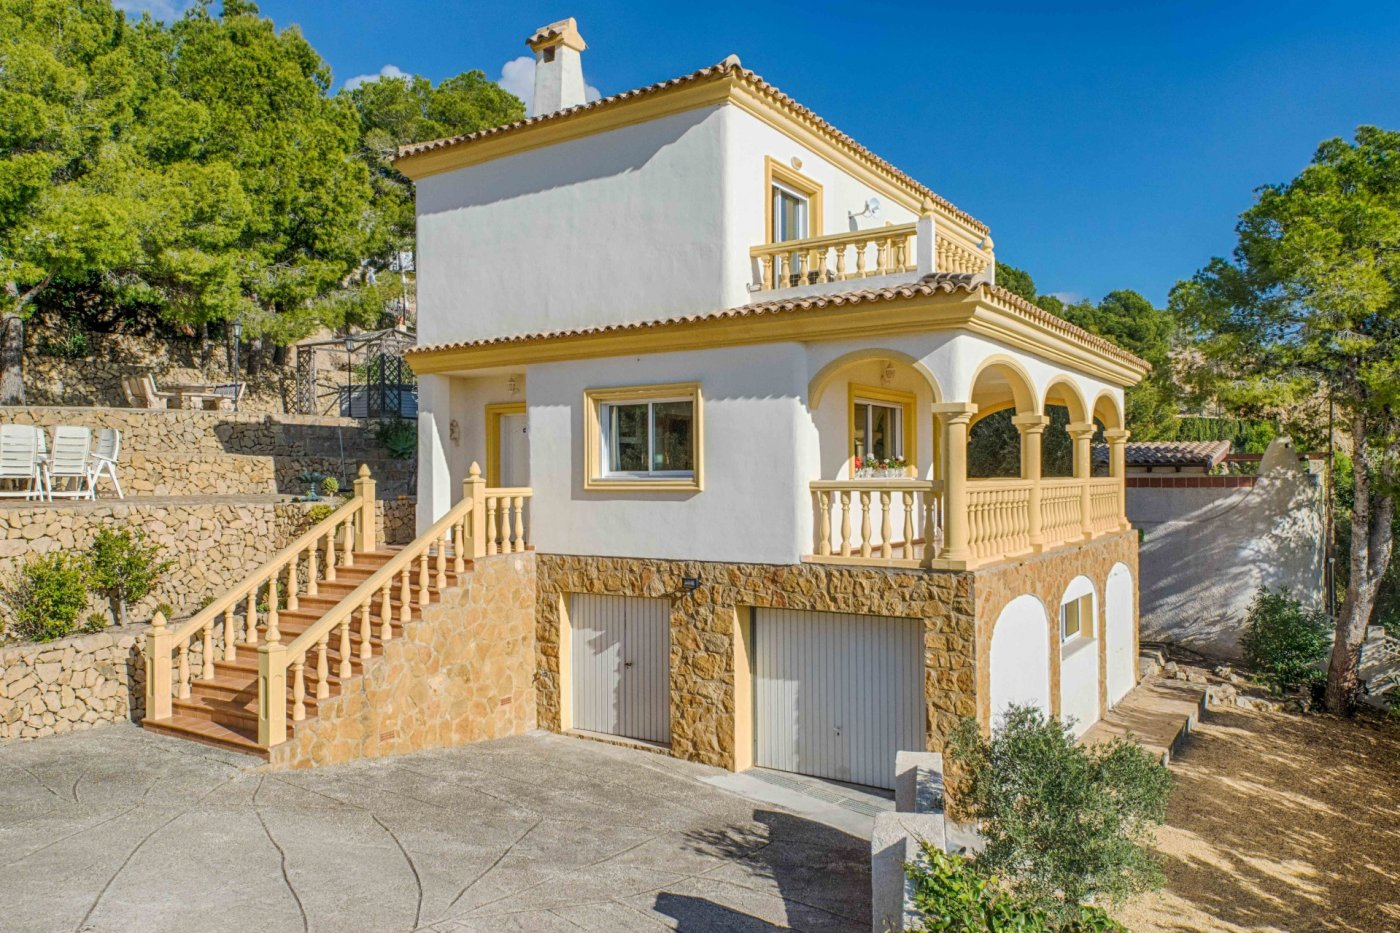 Villa in Altea Altea La Vella